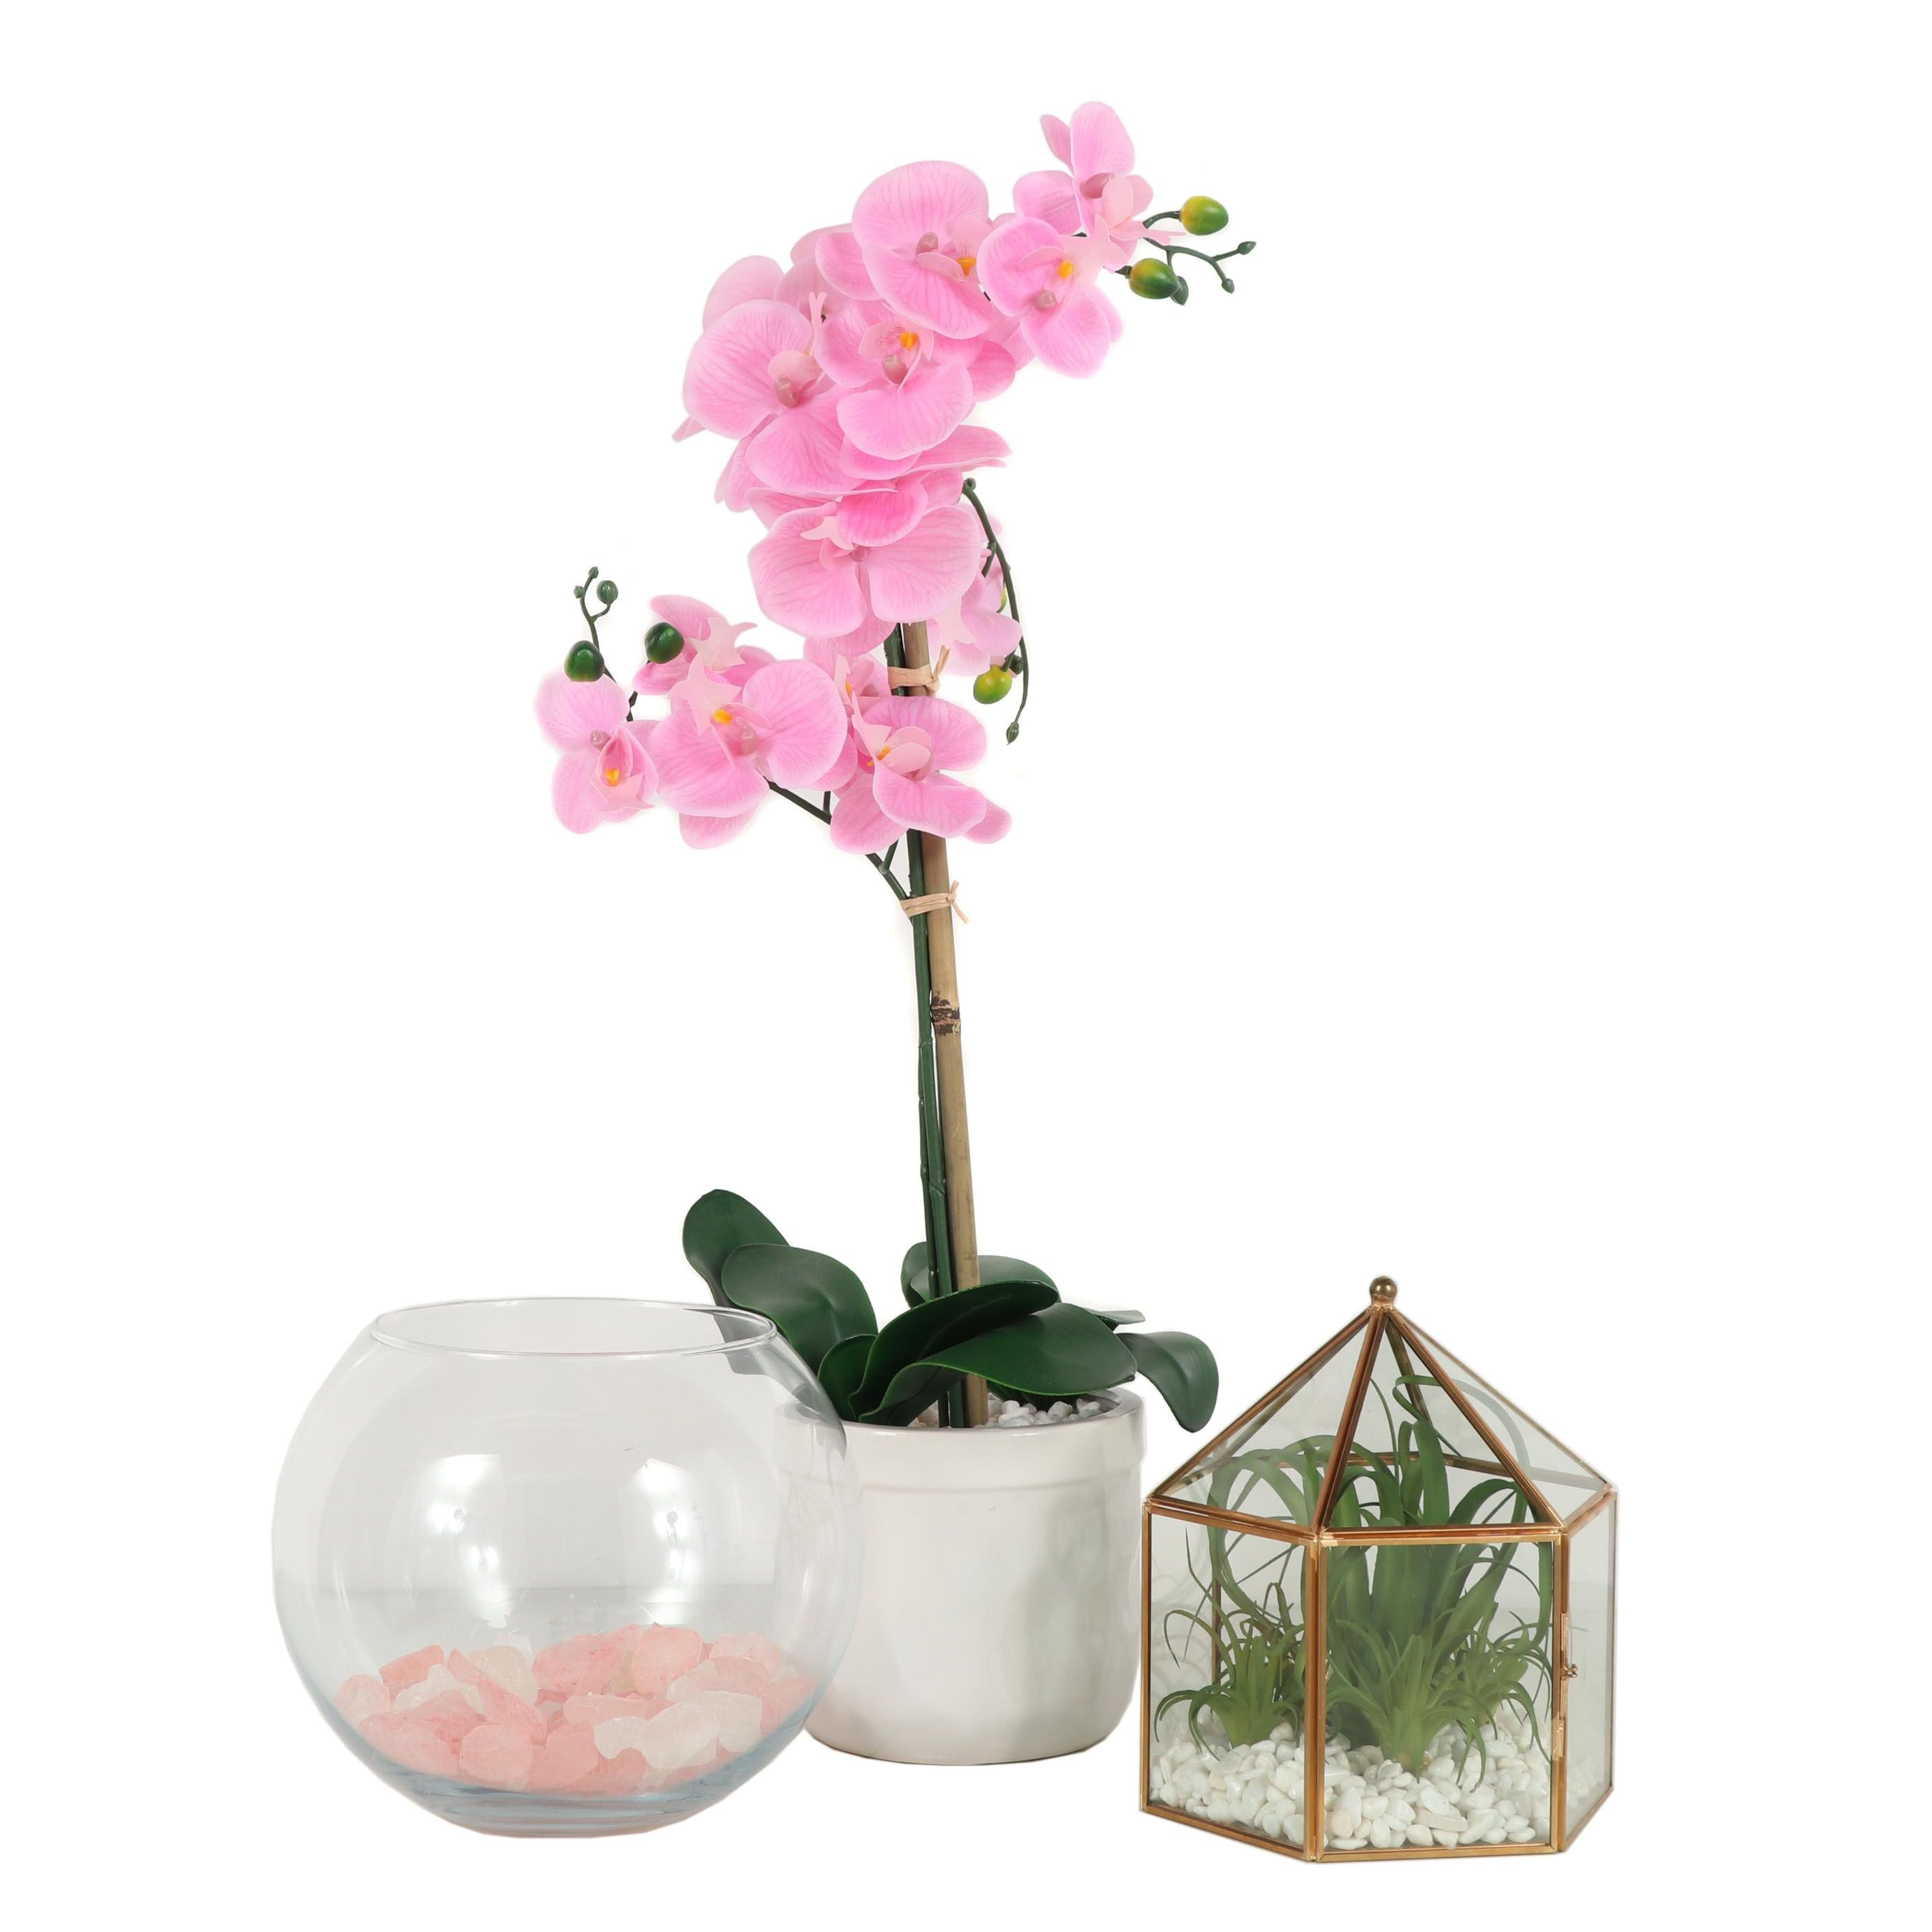 Decorative Terrariums and Artificial Plant with Wall Decor